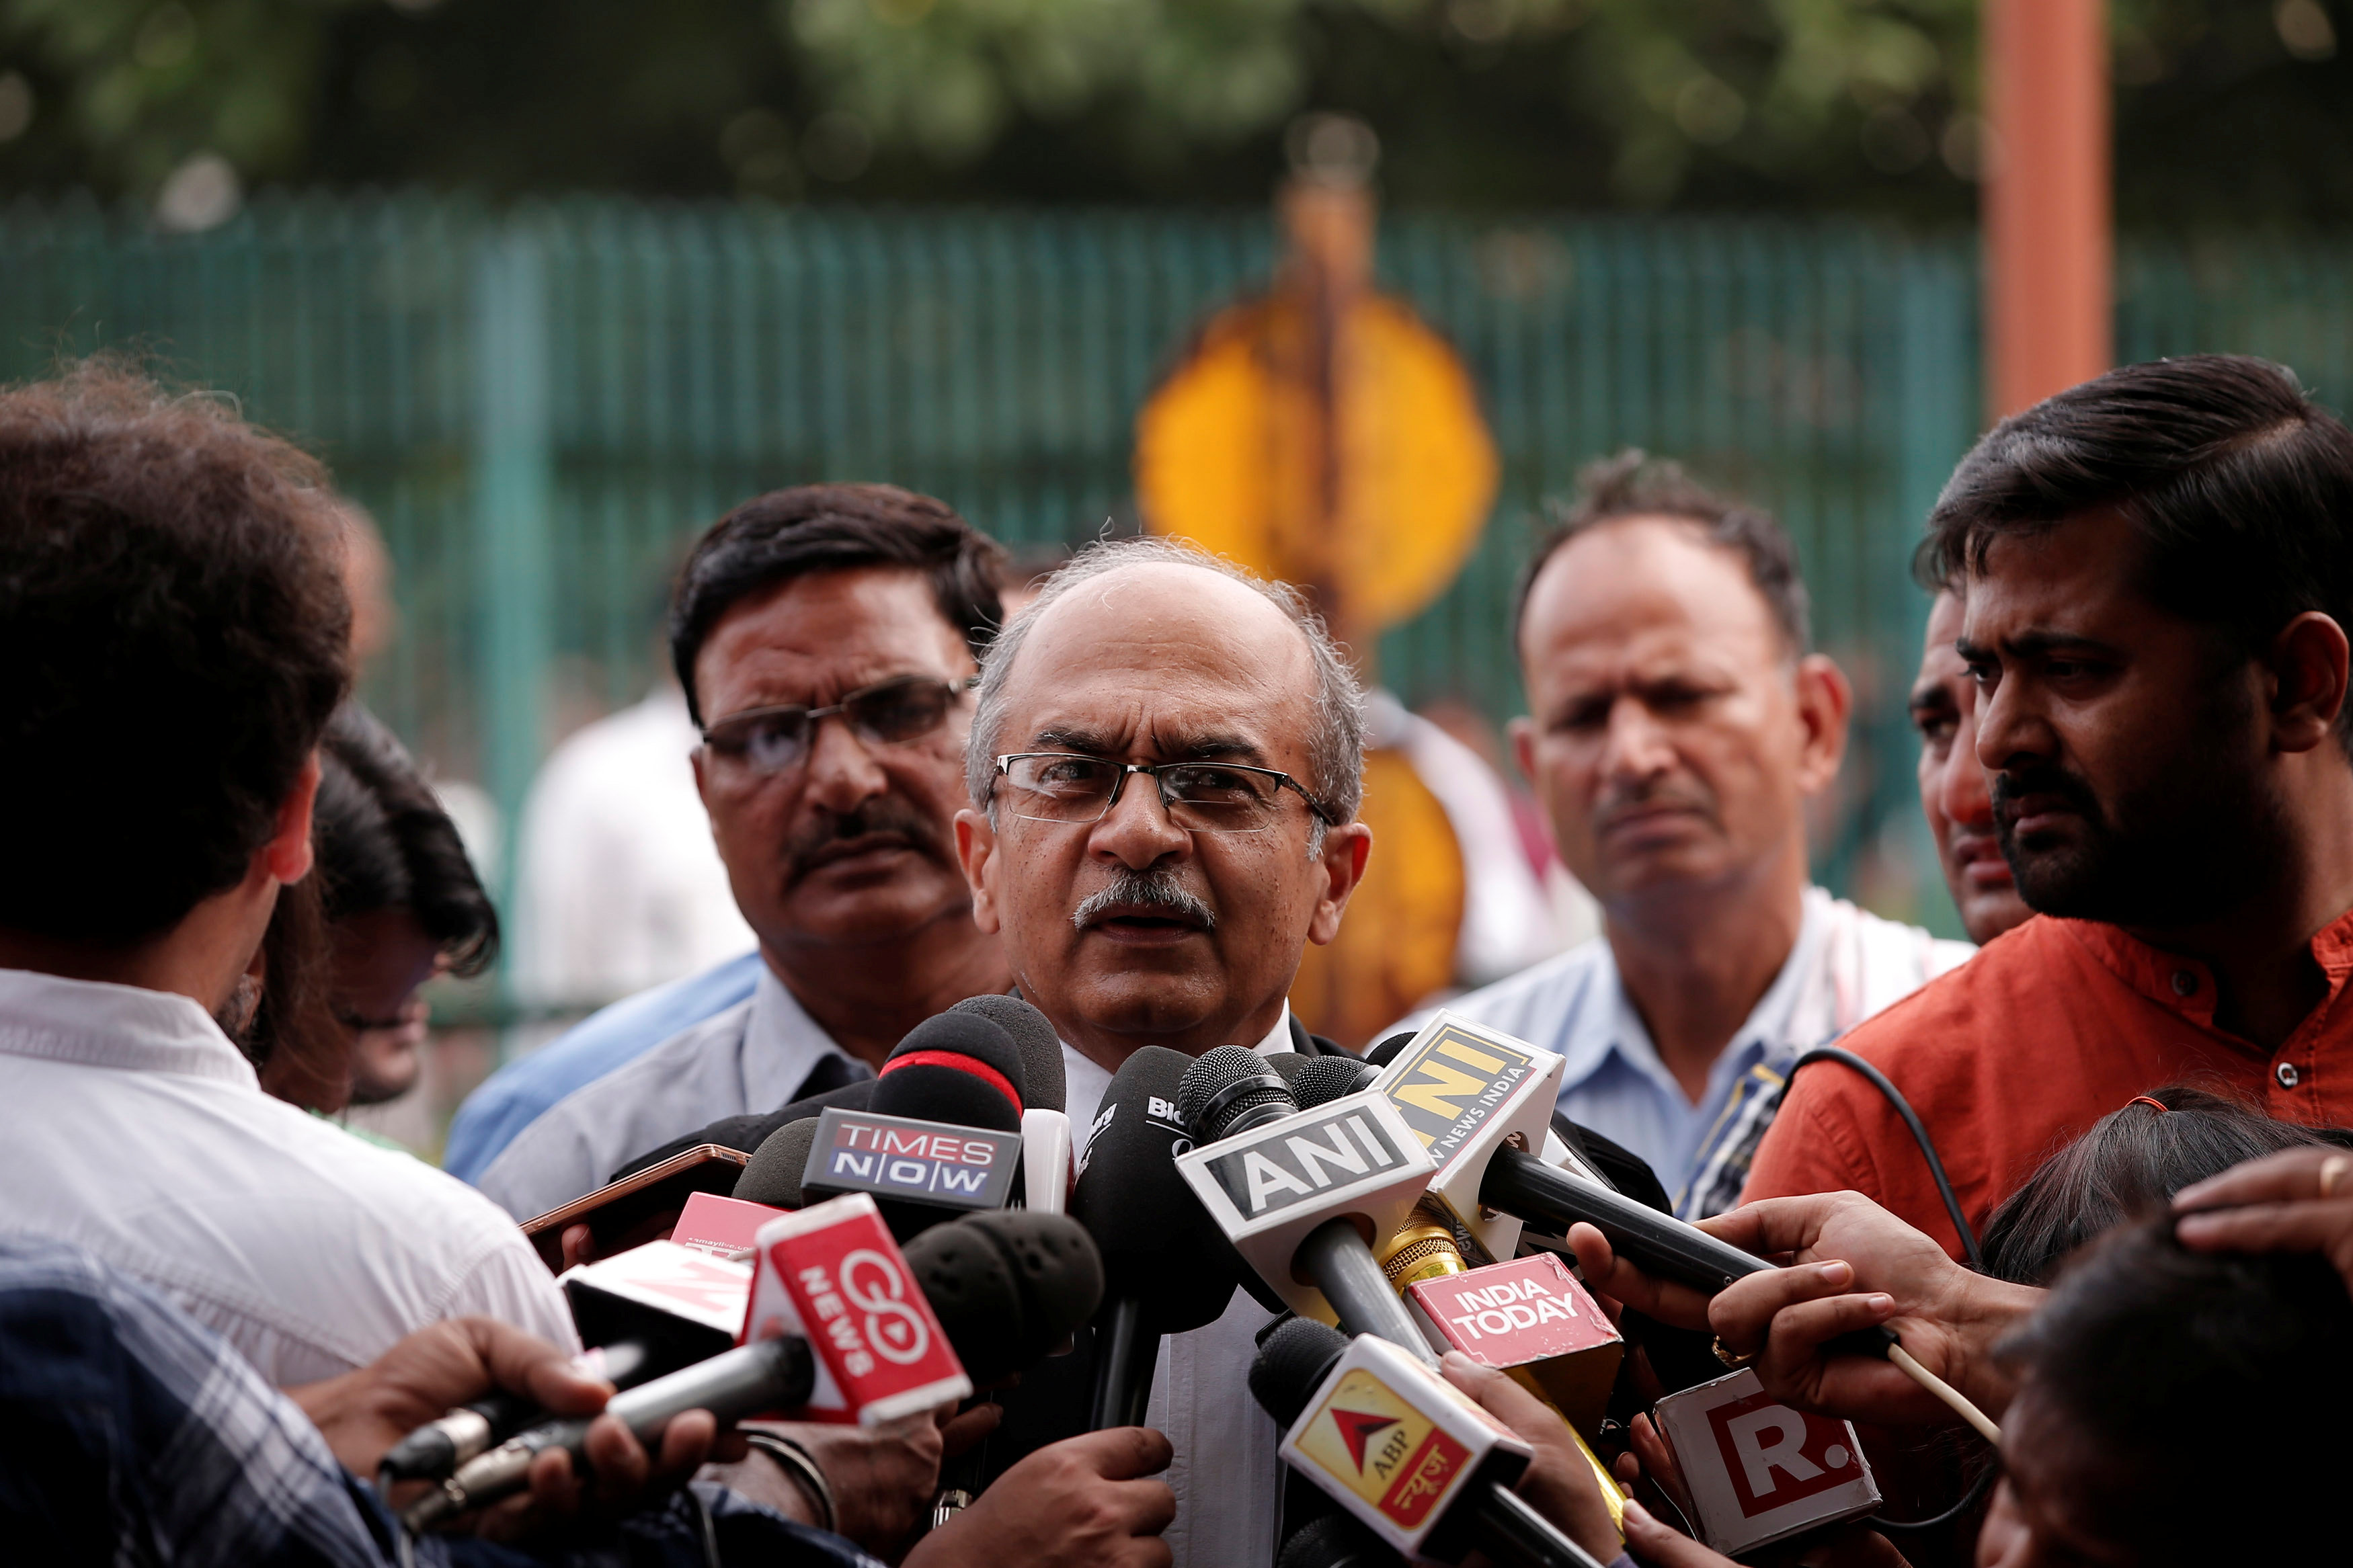 Prashant Bhushan, a senior lawyer, speaks with the media after a verdict on right to privacy outside the Supreme Court in New Delhi, India August 24, 2017. REUTERS/Adnan Abidi